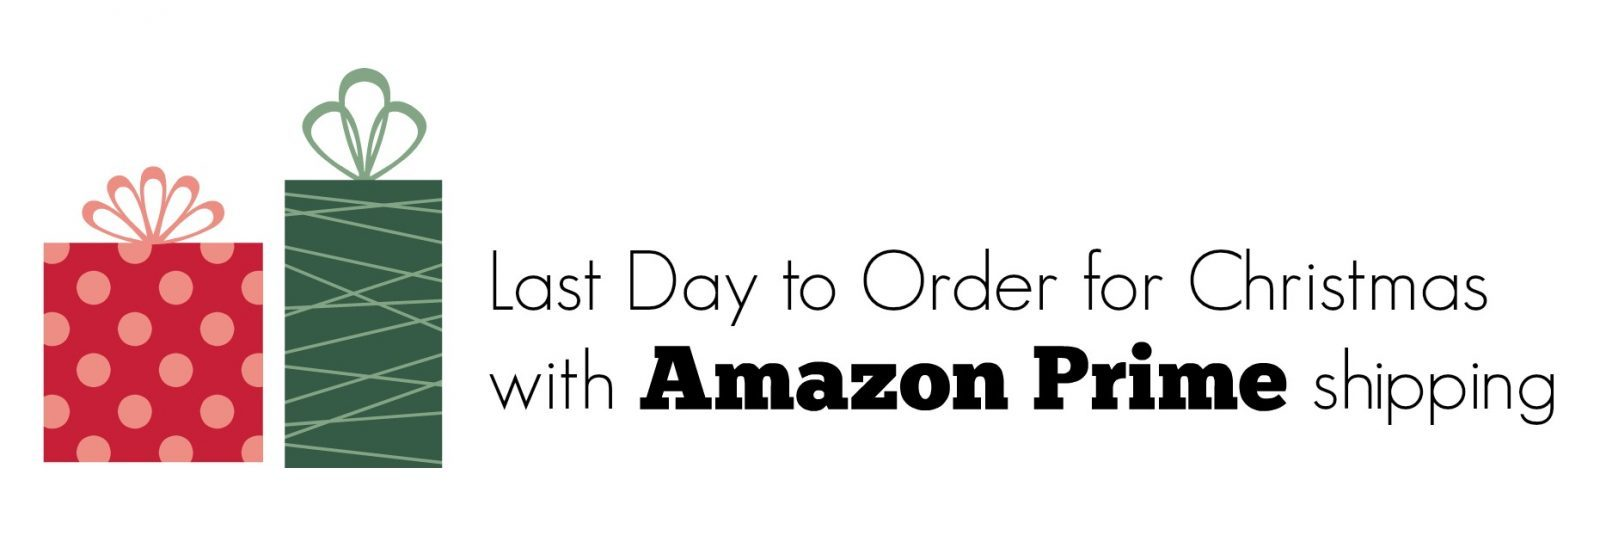 Amazon: Last Day to Order for Christmas with Free Prime Shipping + ...